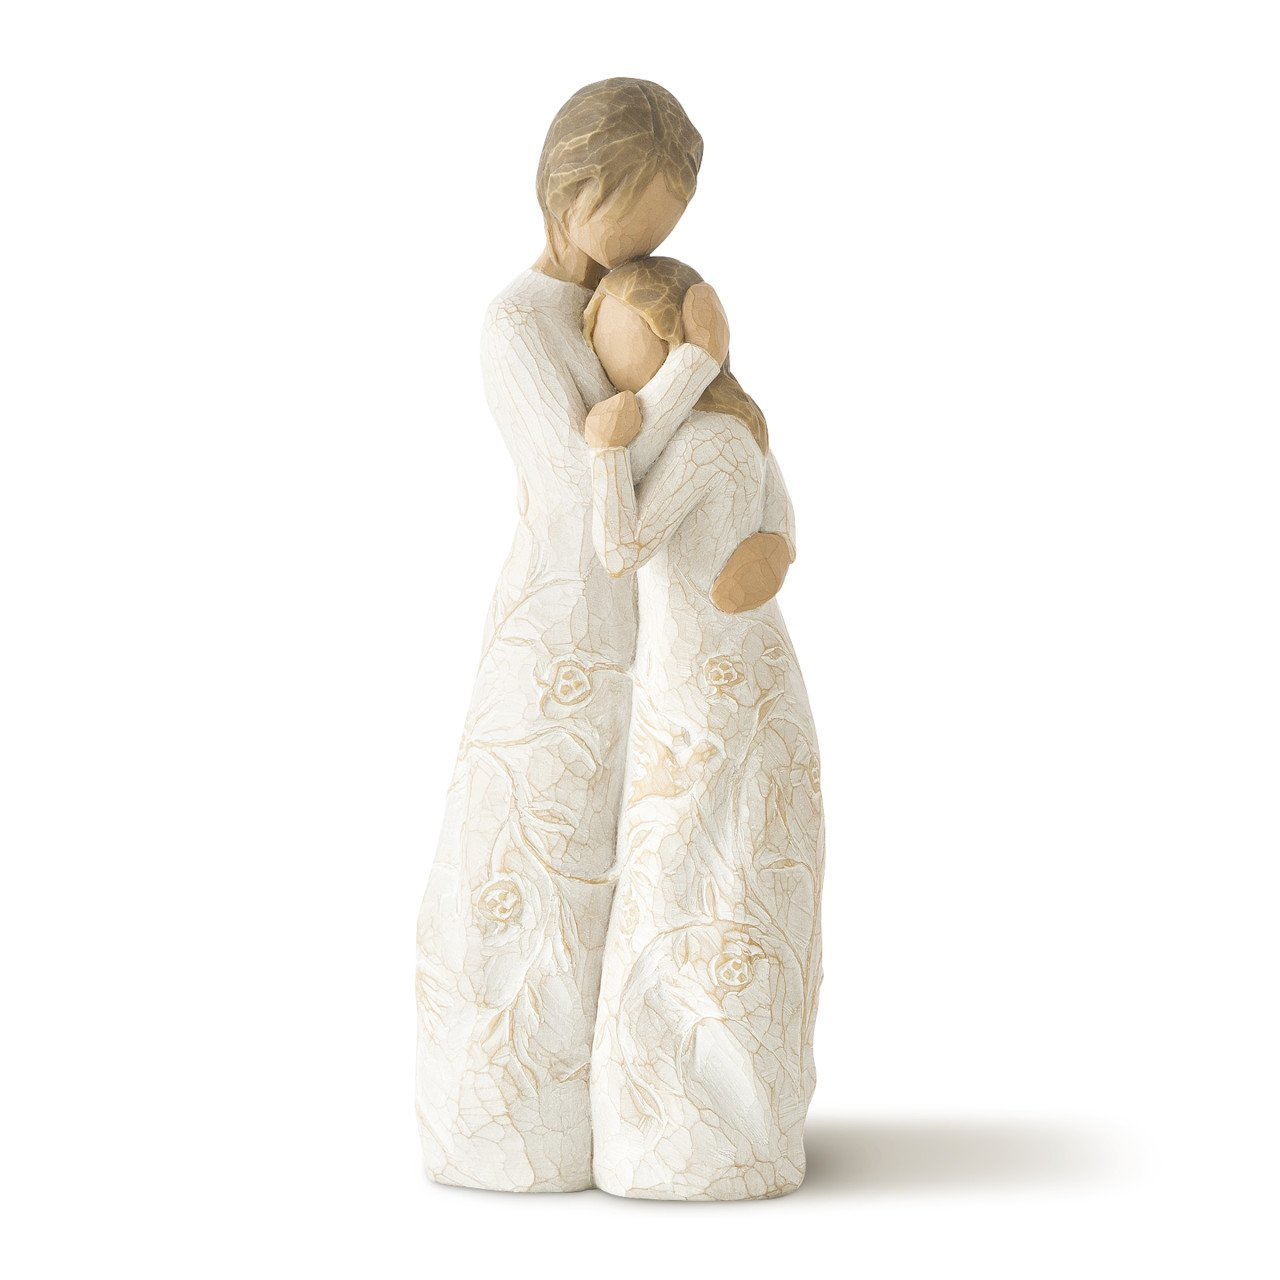 Willow Tree hand-painted sculpted figure, Close to me (26222) by Willow Tree